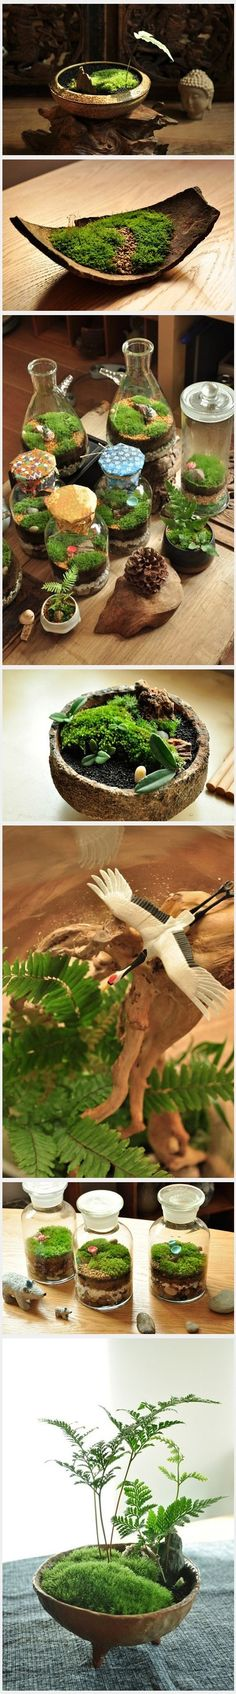 Houseplants for Better Sleep Moss Gardens, For Kensie To Make A Fairy Garden. Garden Terrarium, Succulents Garden, Garden Plants, Planting Flowers, Moss Terrarium, Terrarium Ideas, Garden Care, Air Plants, Indoor Plants